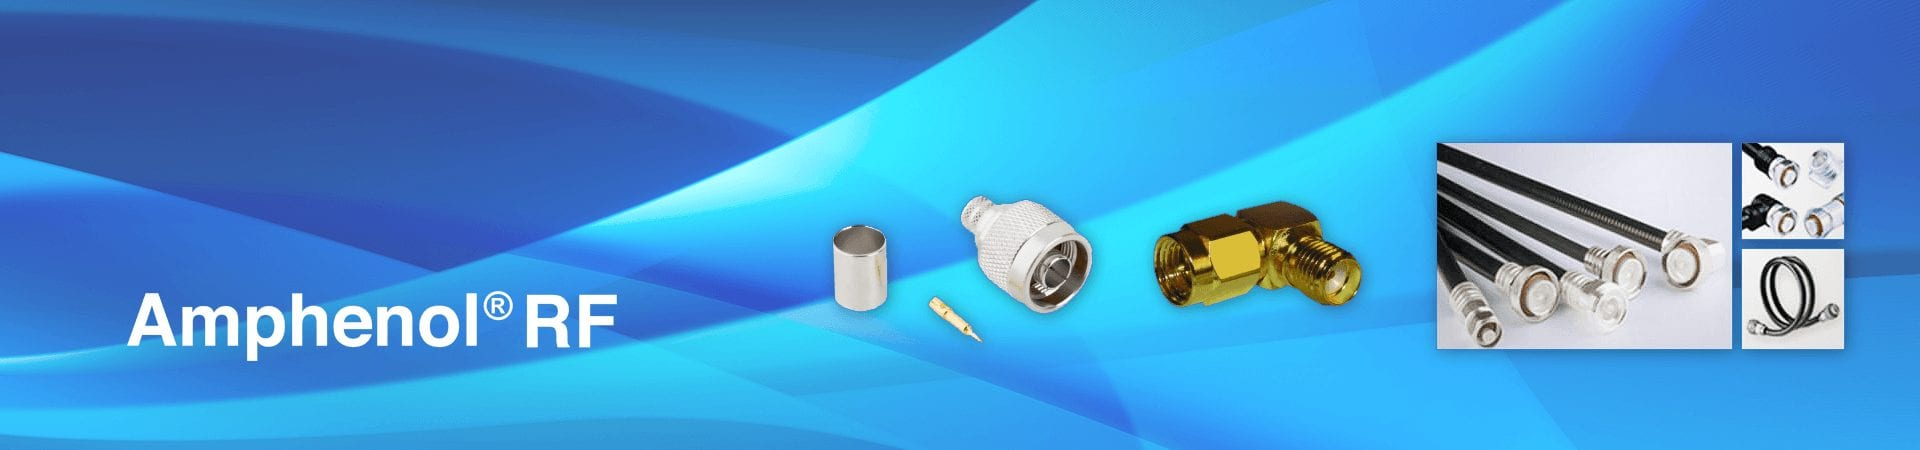 RF Connectors, RF Adapters, and RF Cable Asemblies by Amphenol RF